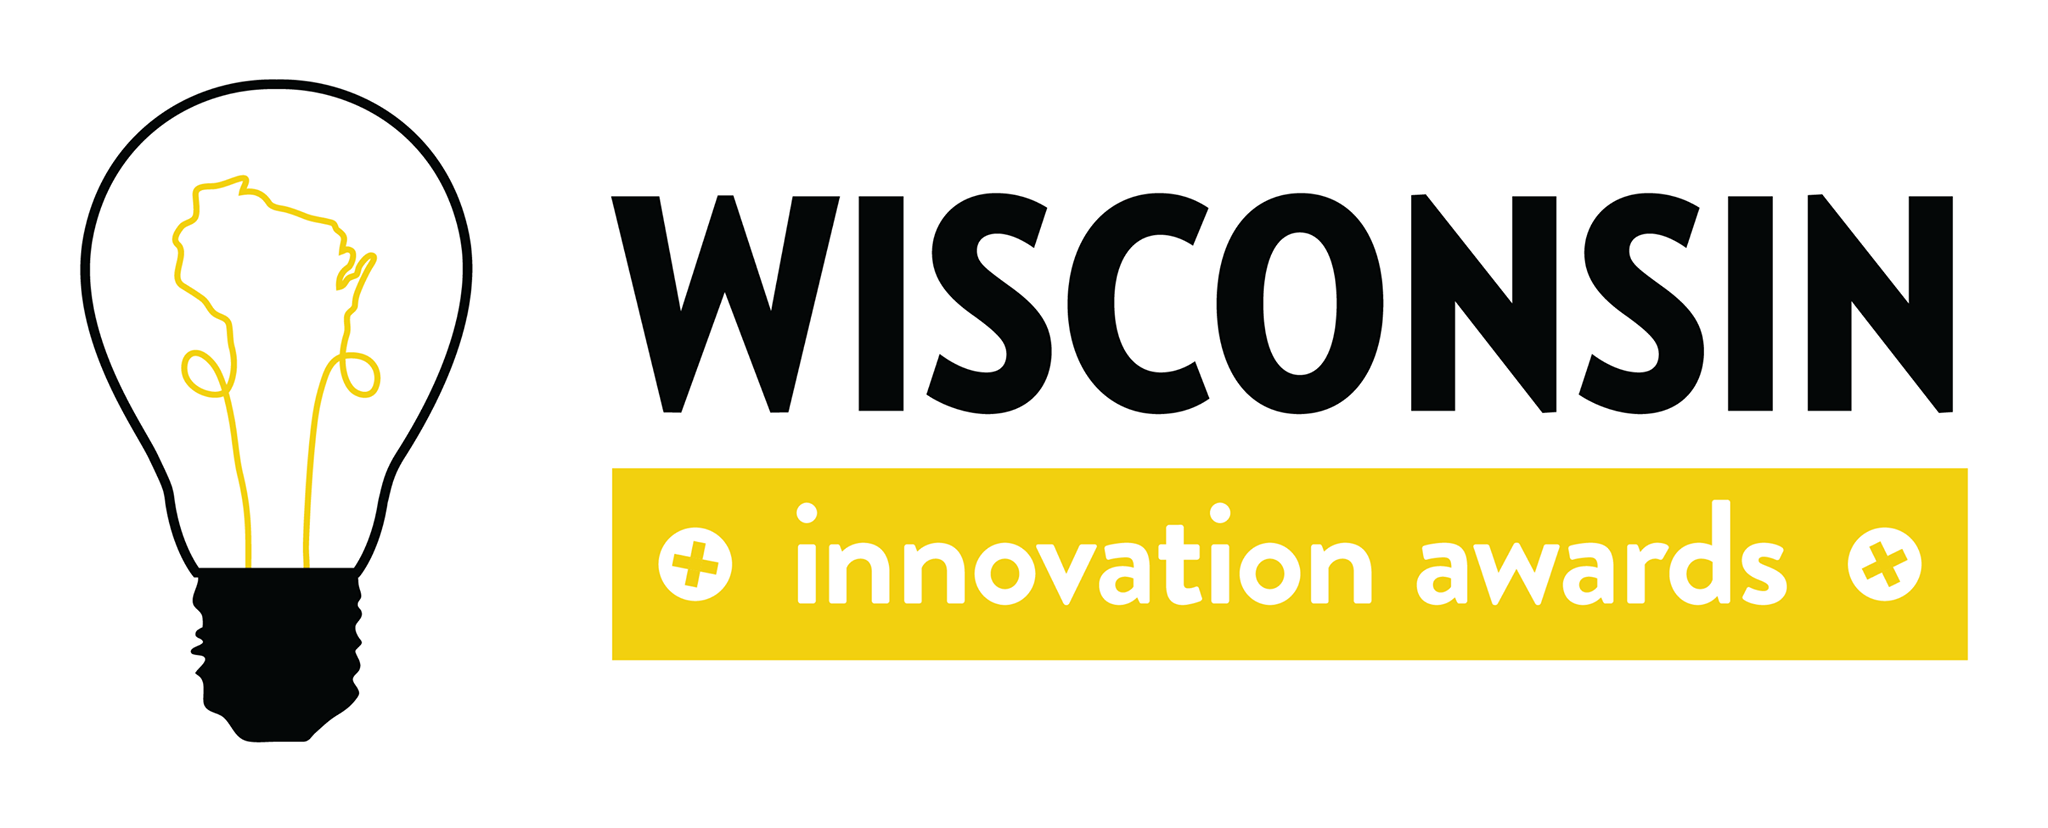 wisconsin innovation awards